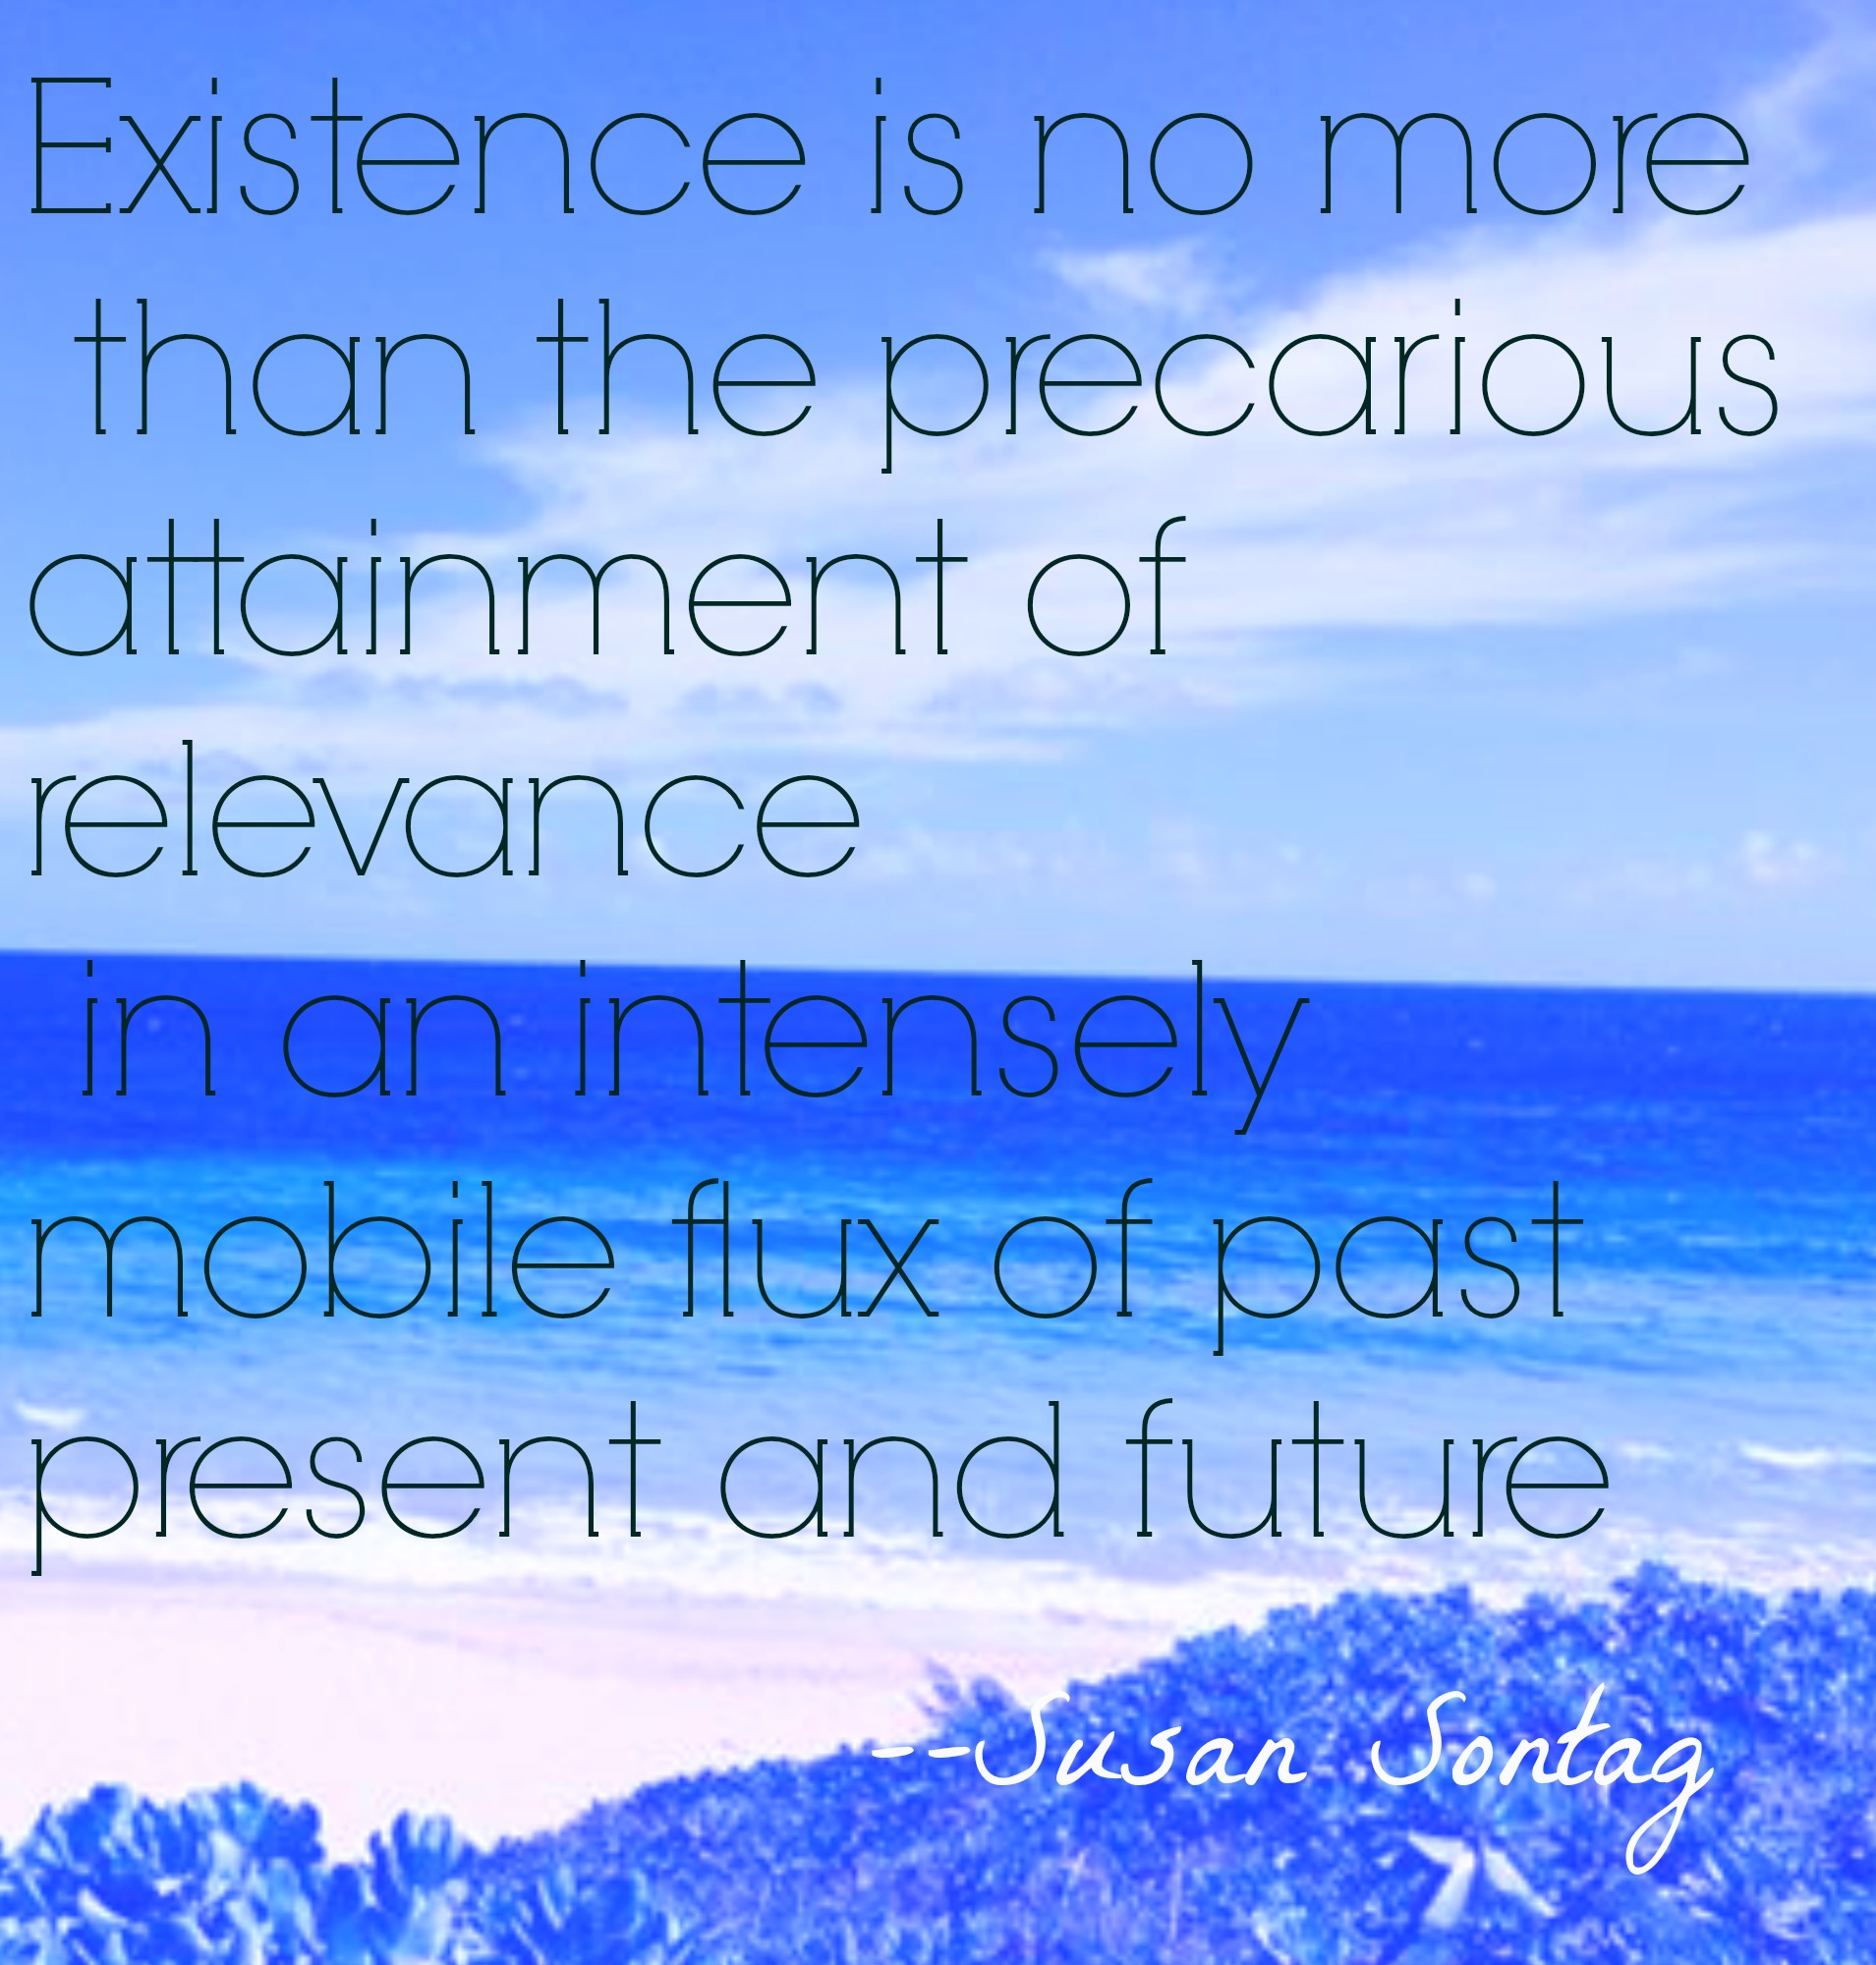 Existence is no more than the precarious attainment of relevance in an intensely mobile flux of past, present, and future